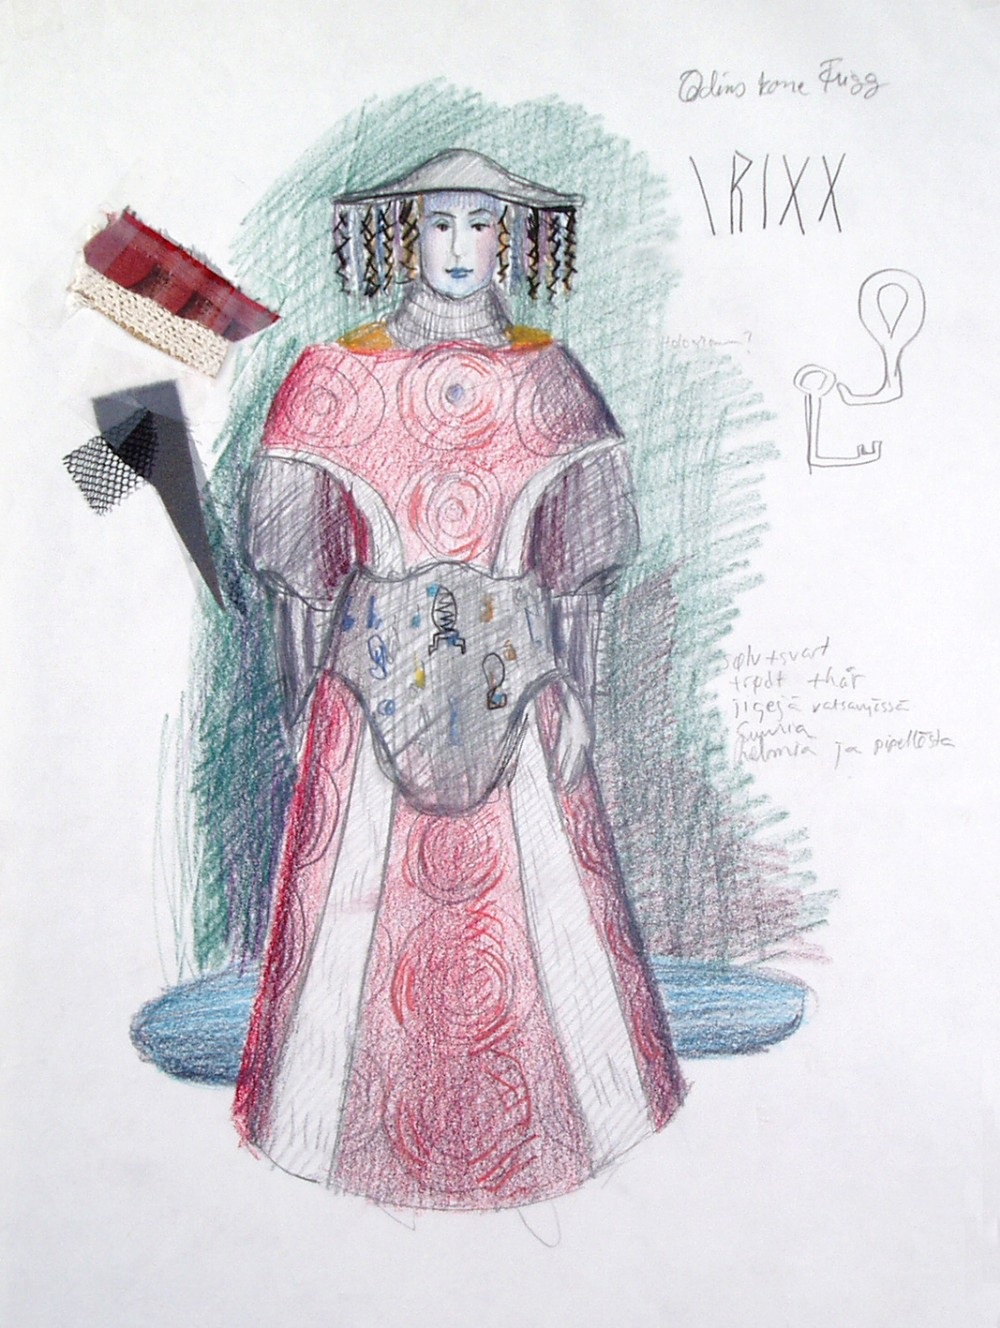 A sketch of the Frigg costume including a long red and white dress with a broad belt and hat